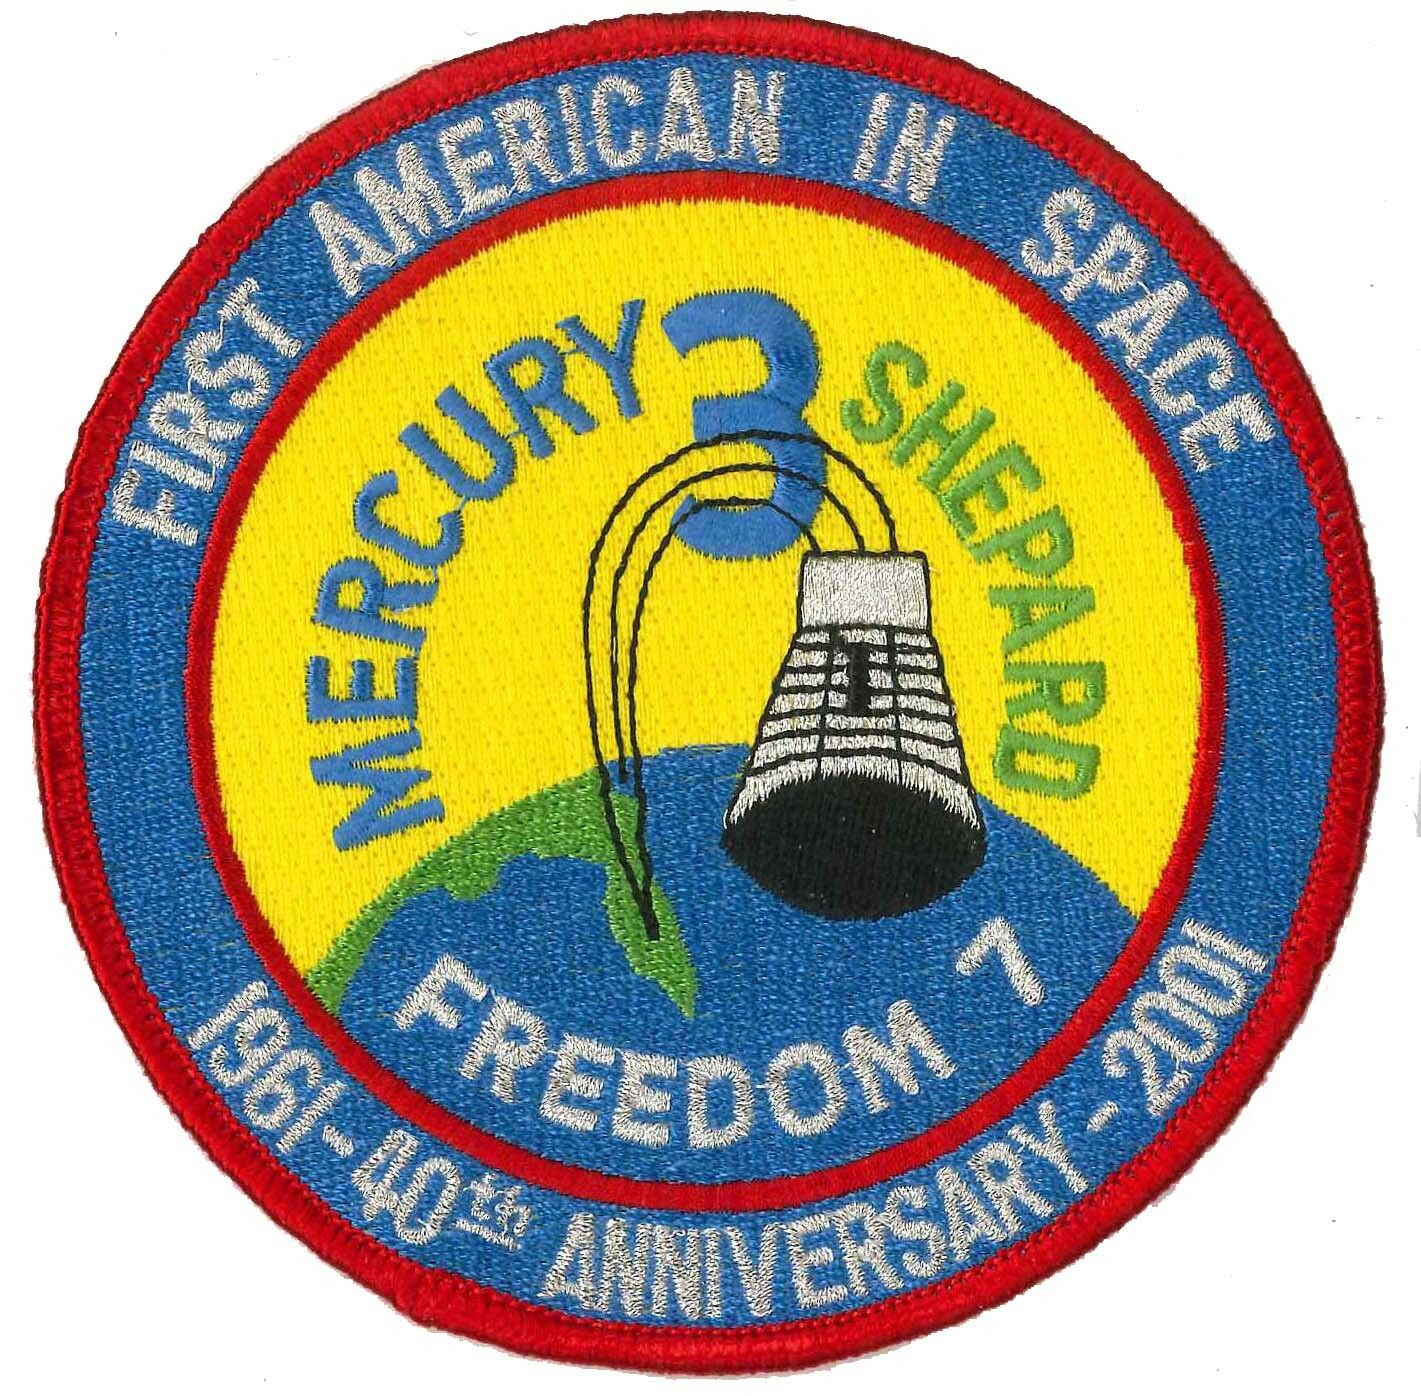 nasa patches for sale - HD1421×1396